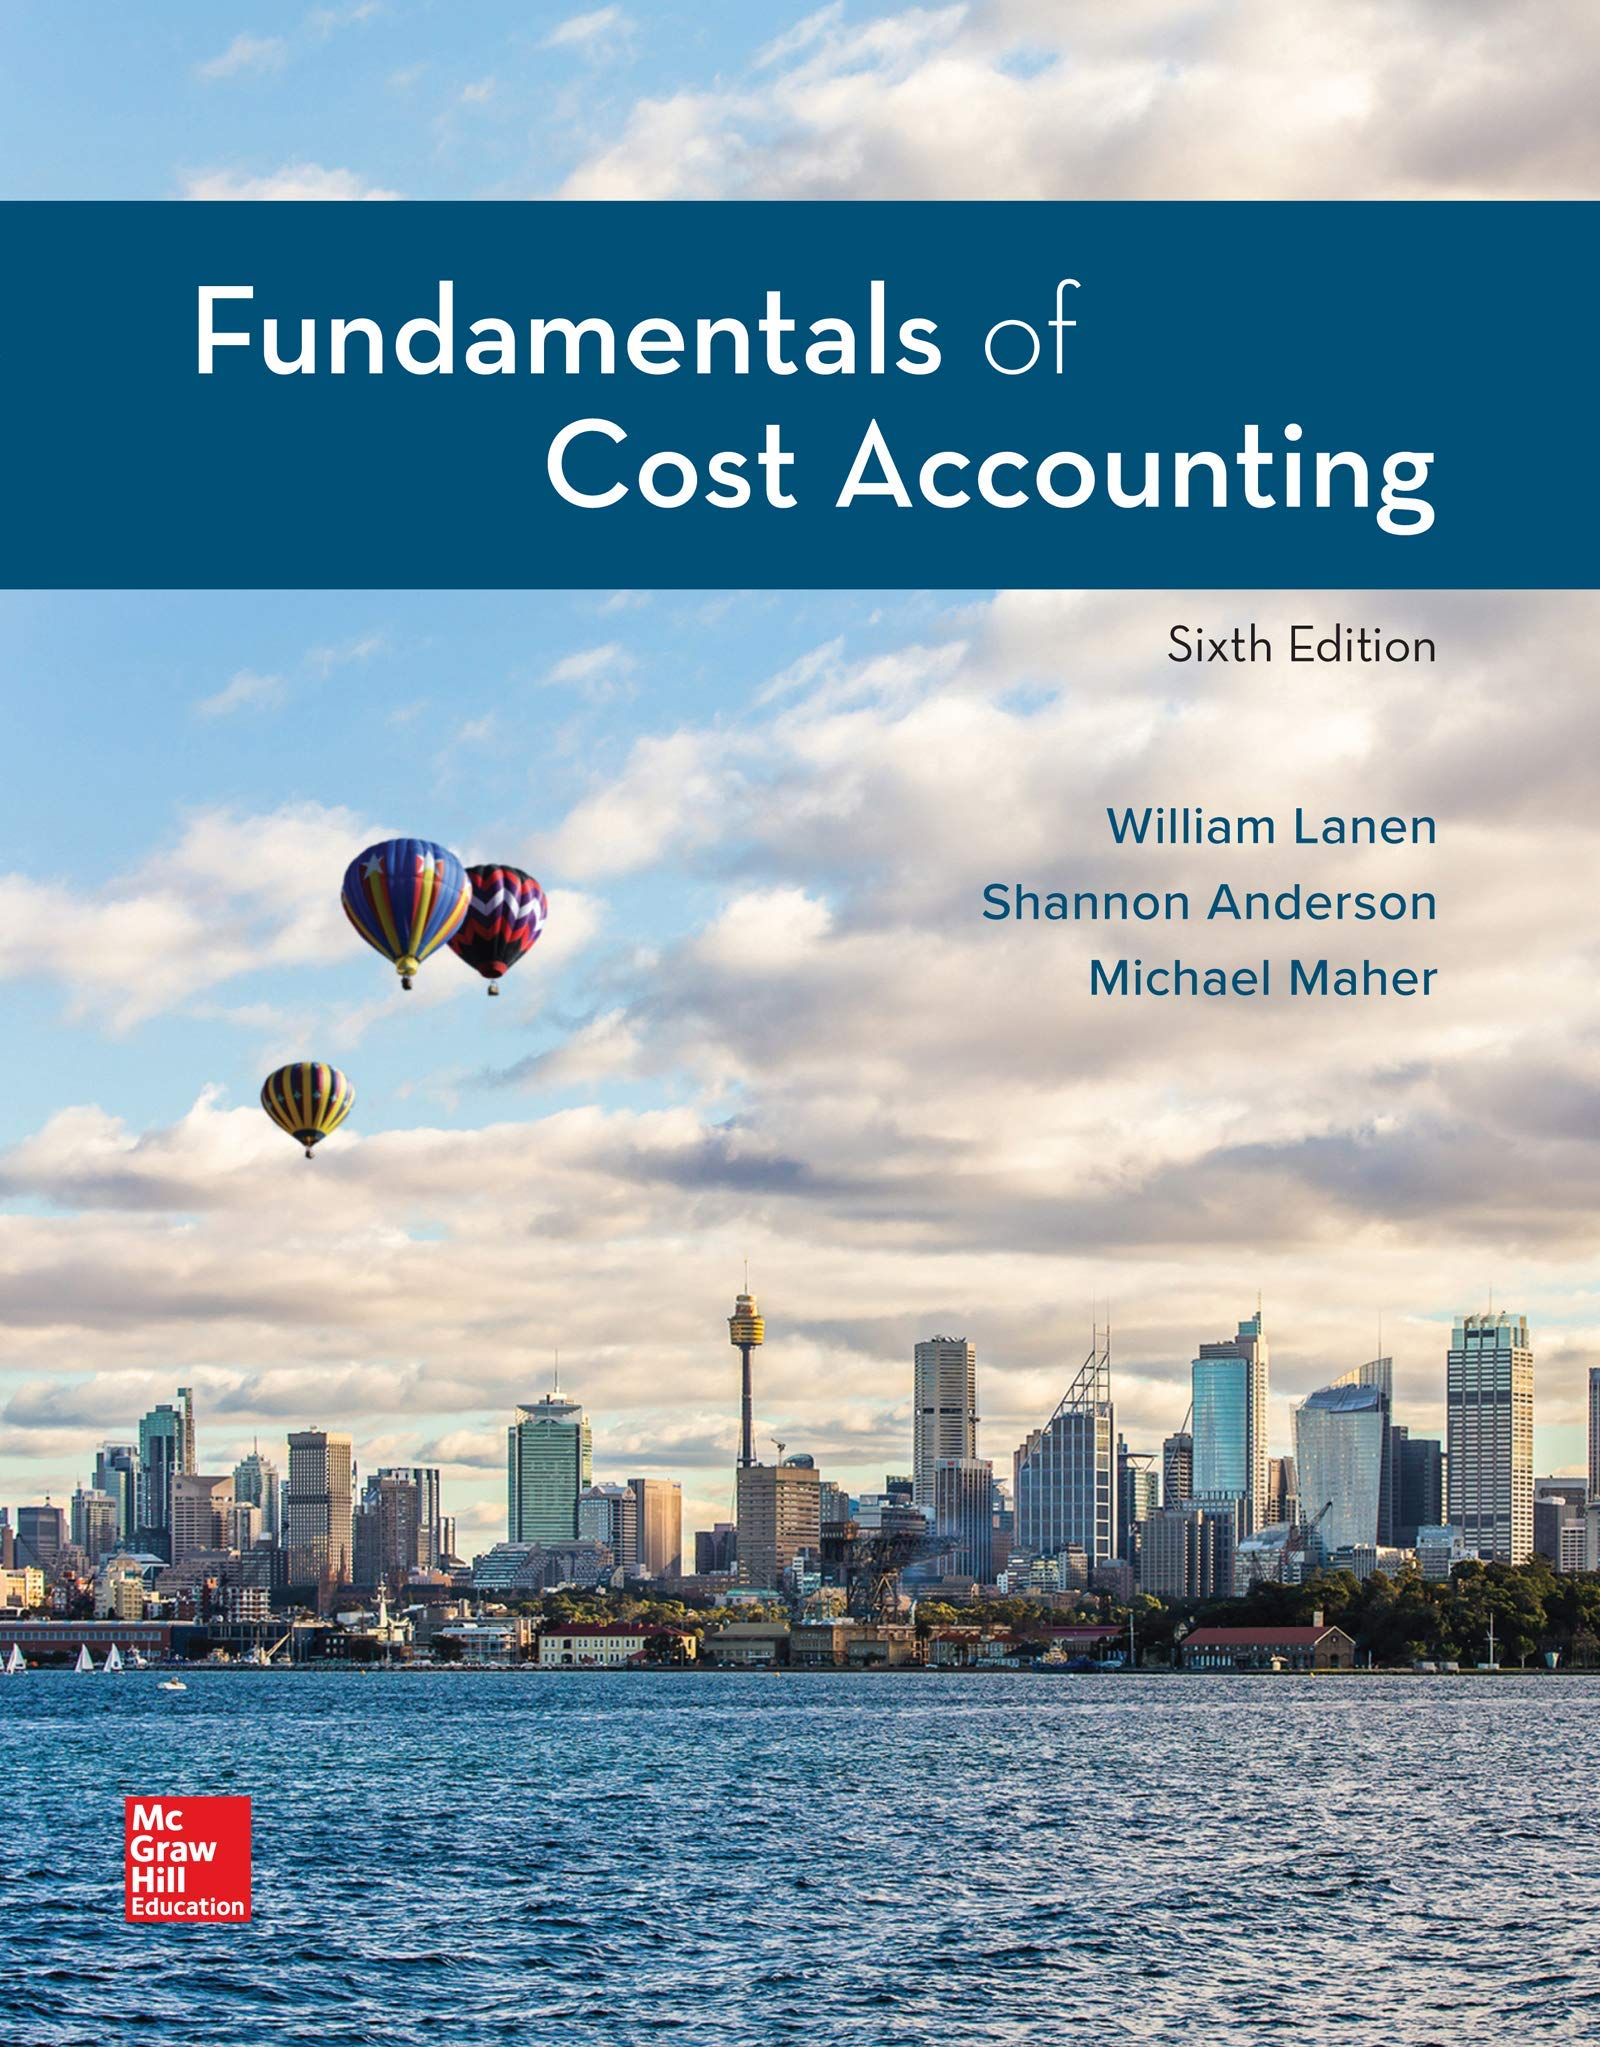 Fundamentals of Cost Accounting 6th Edition